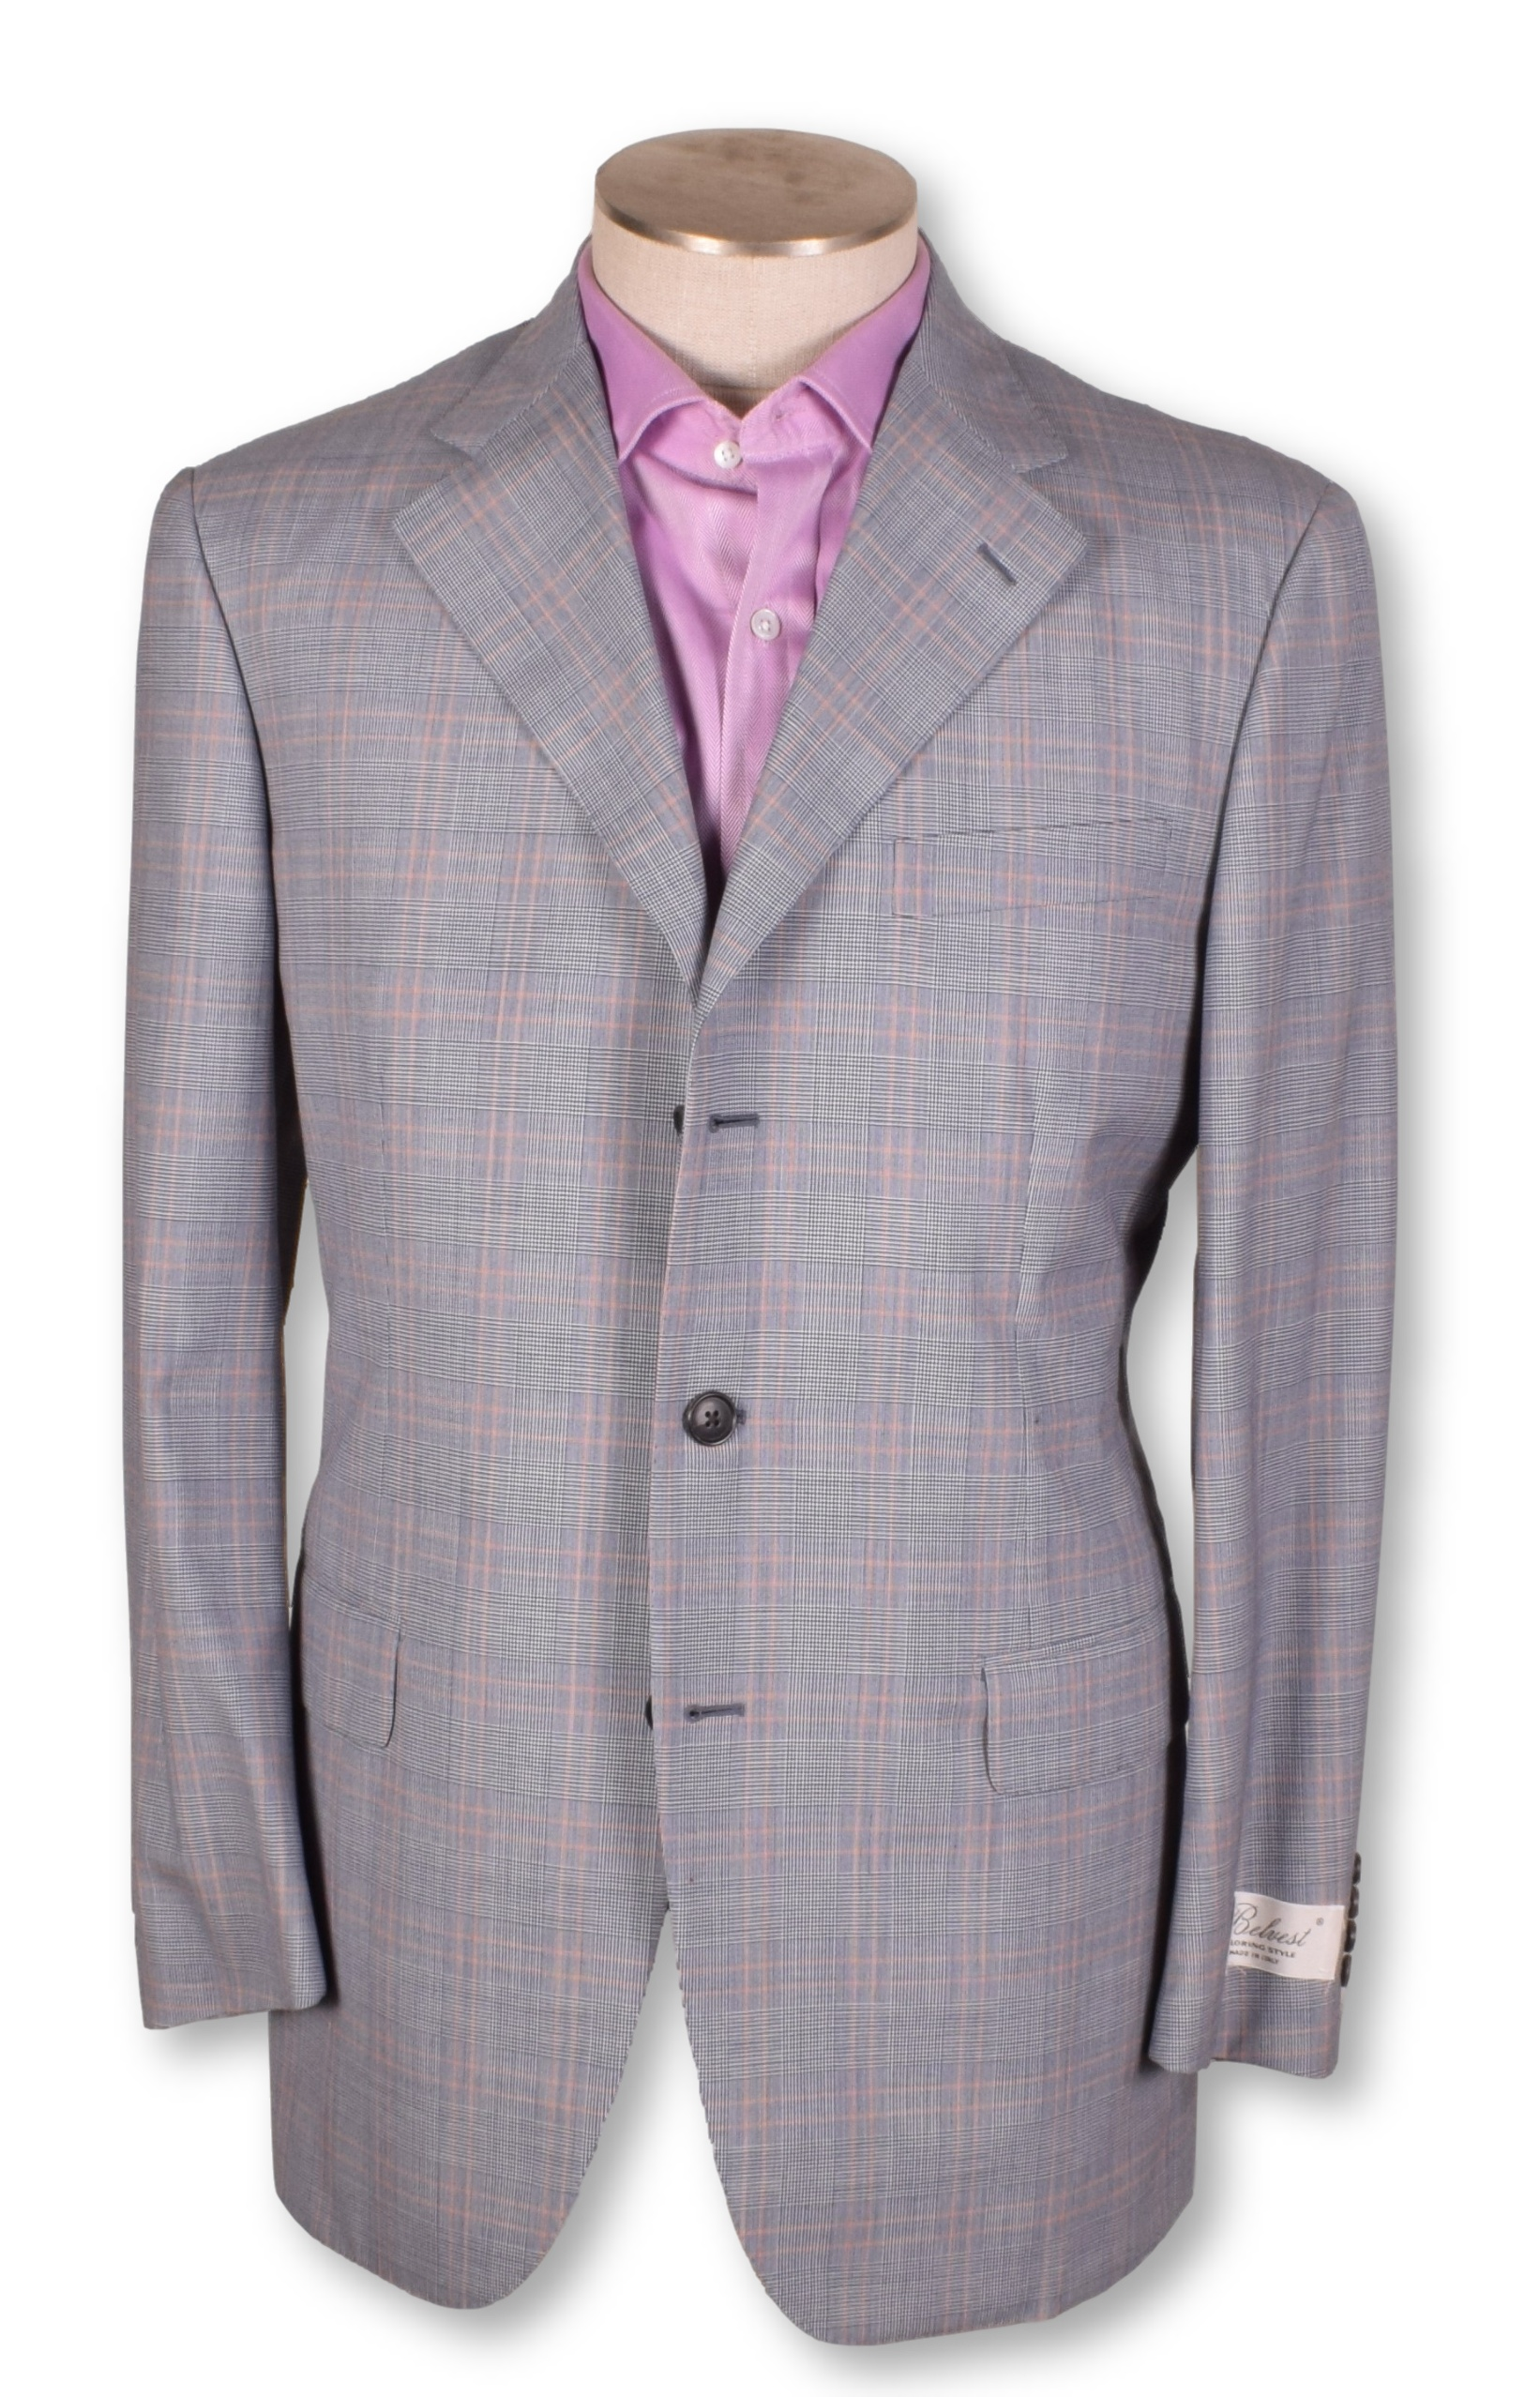 New NWT Belvest Pink Plaid Two Button Single Vent Pure Cashmere Sportcoat 40 40r